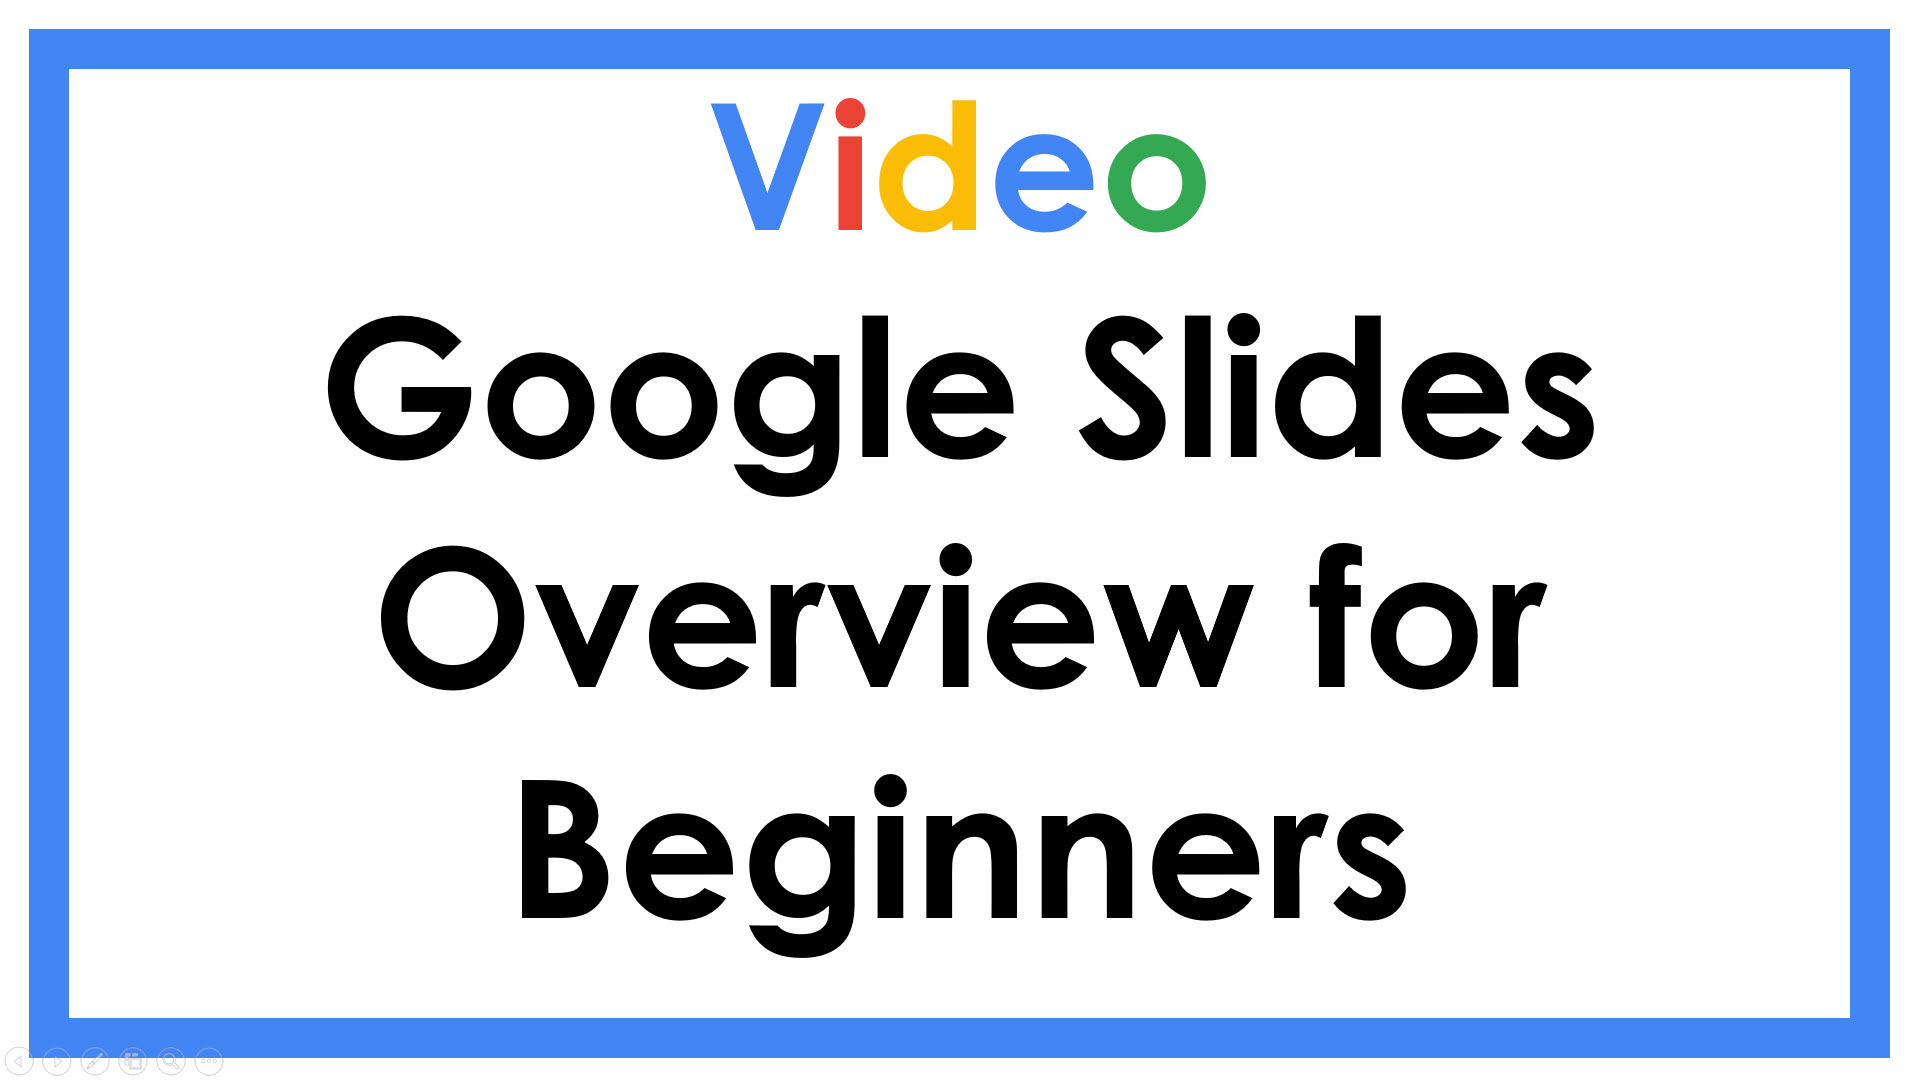 Google Slides overview for beginners